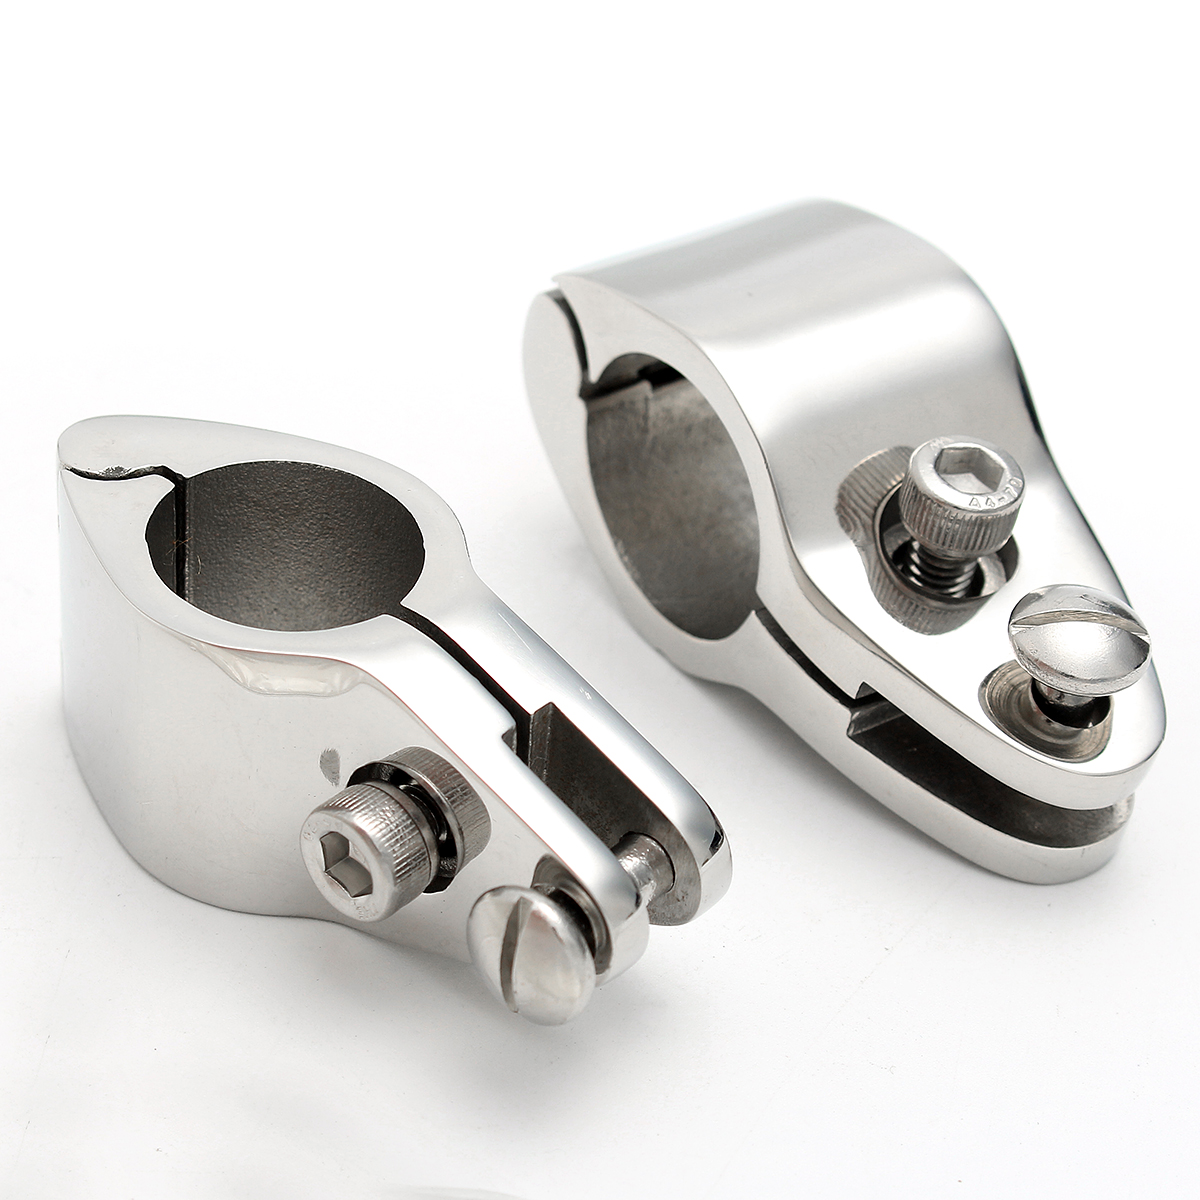 22/25mm 316 Stainless Steel Fitting <font><b>Boat</b></font> <font><b>Bimini</b></font> <font><b>Top</b></font> Hinged With 2 Screws Jaw Slide Easy Install Marine Hardware image